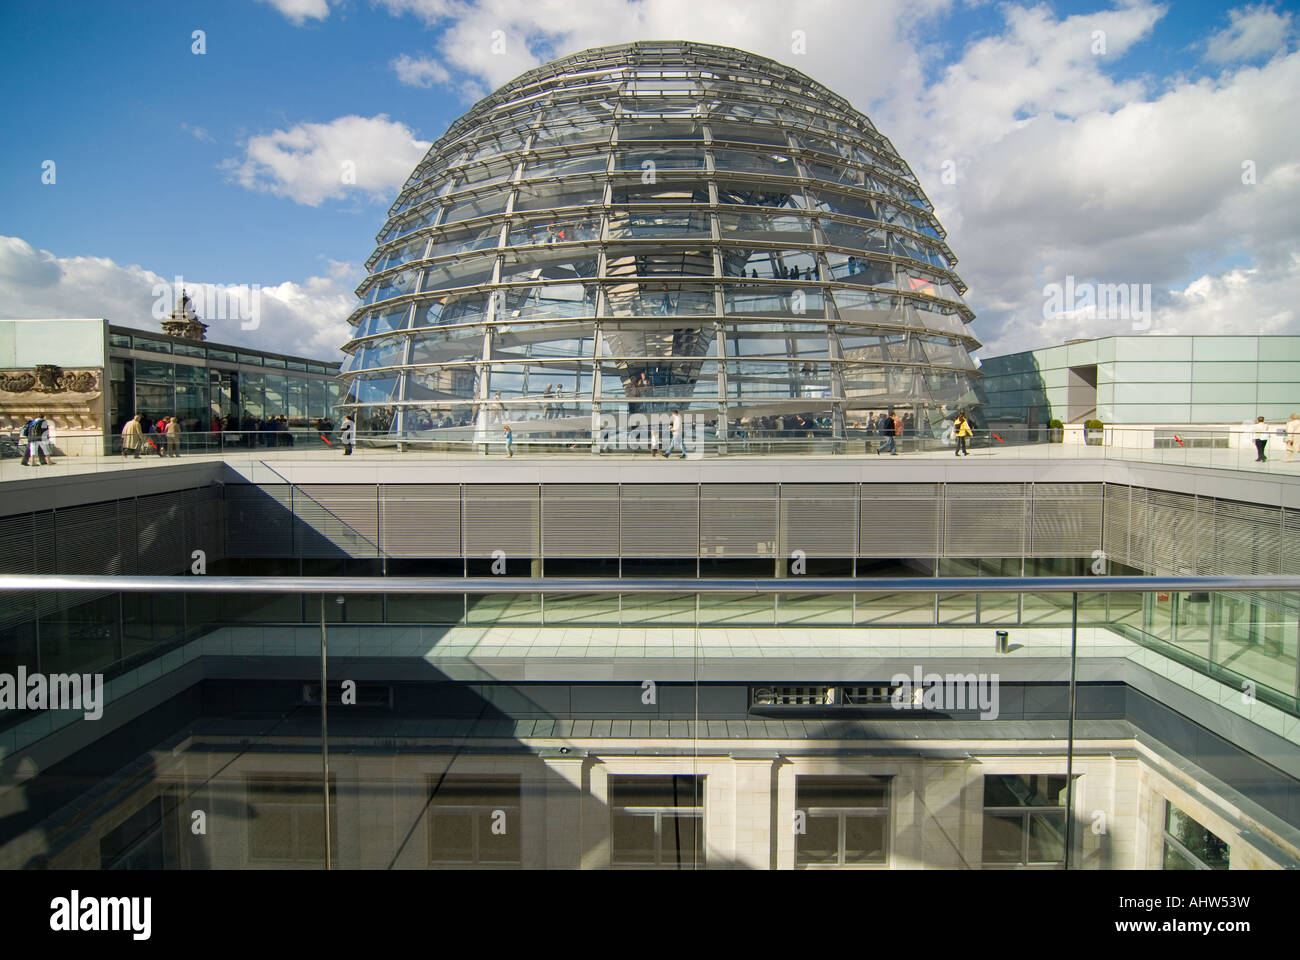 Horizontal wide angle on a bright sunny day of the exterior of Sir Norman Foster's glass dome on the roof of the Stock Photo